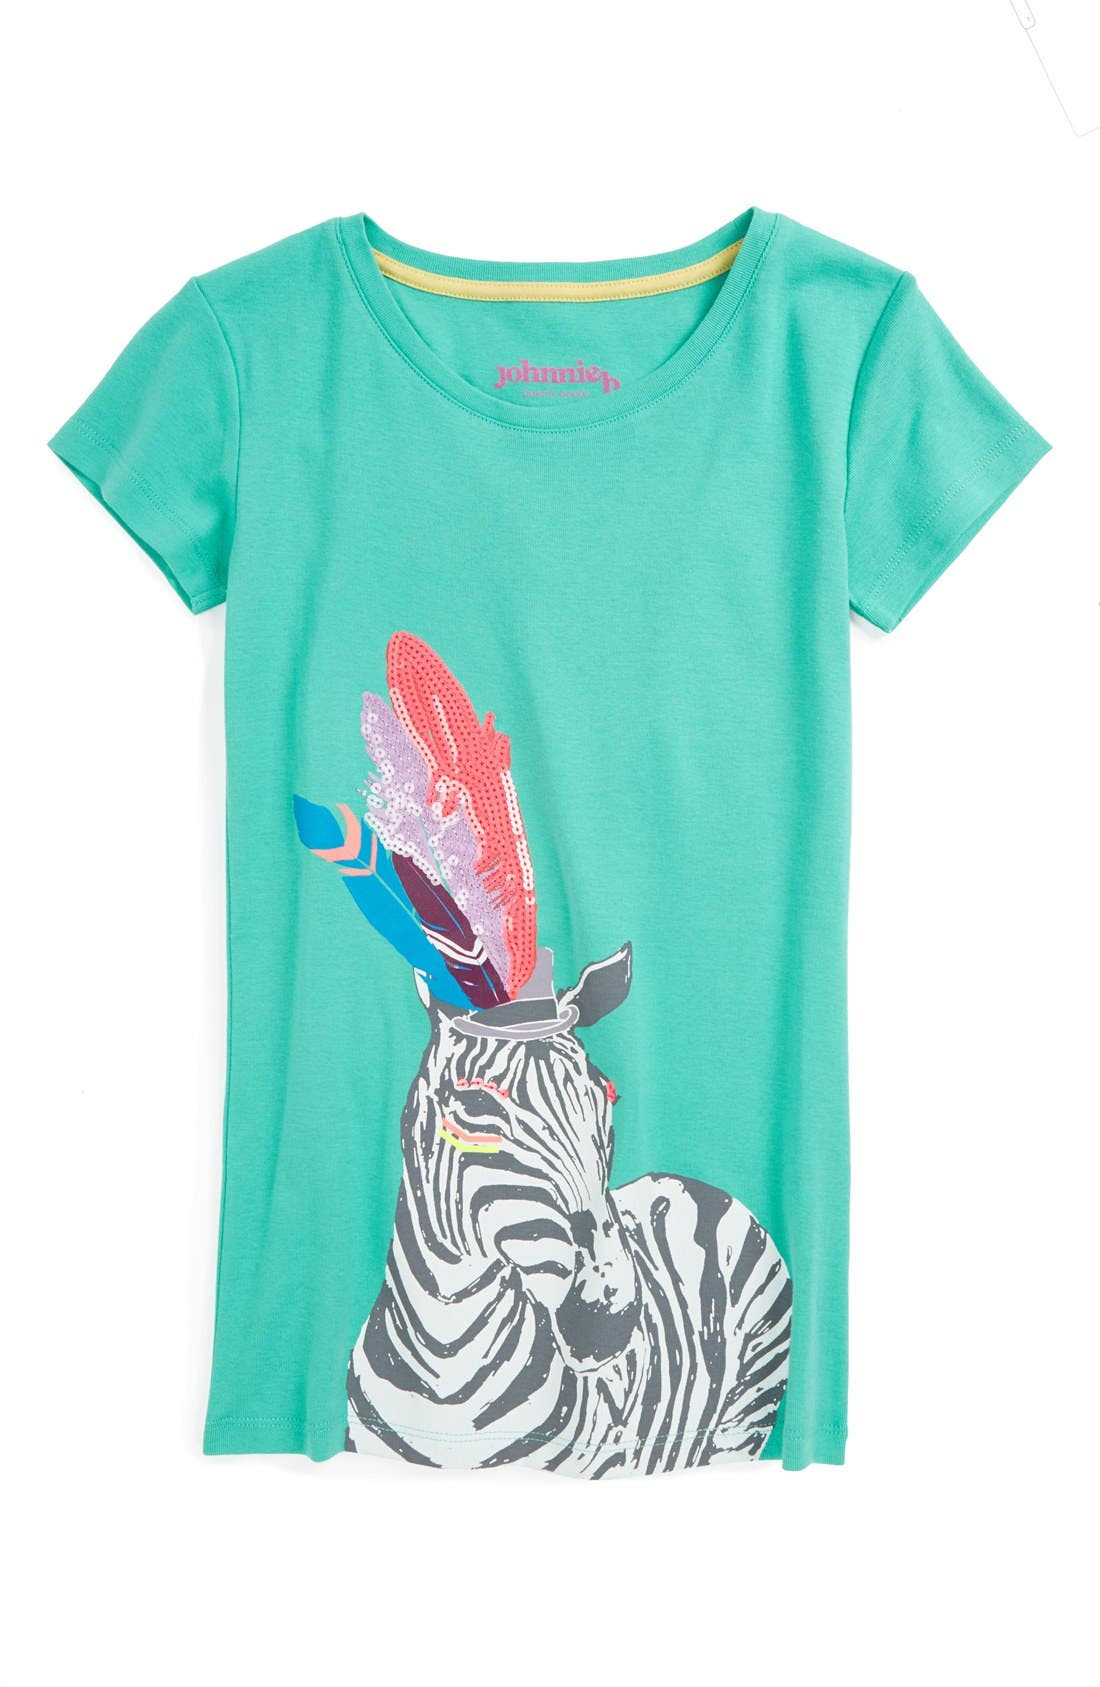 Main Image - Johnnie B by Boden Embellished Graphic Tee (Big Girls)